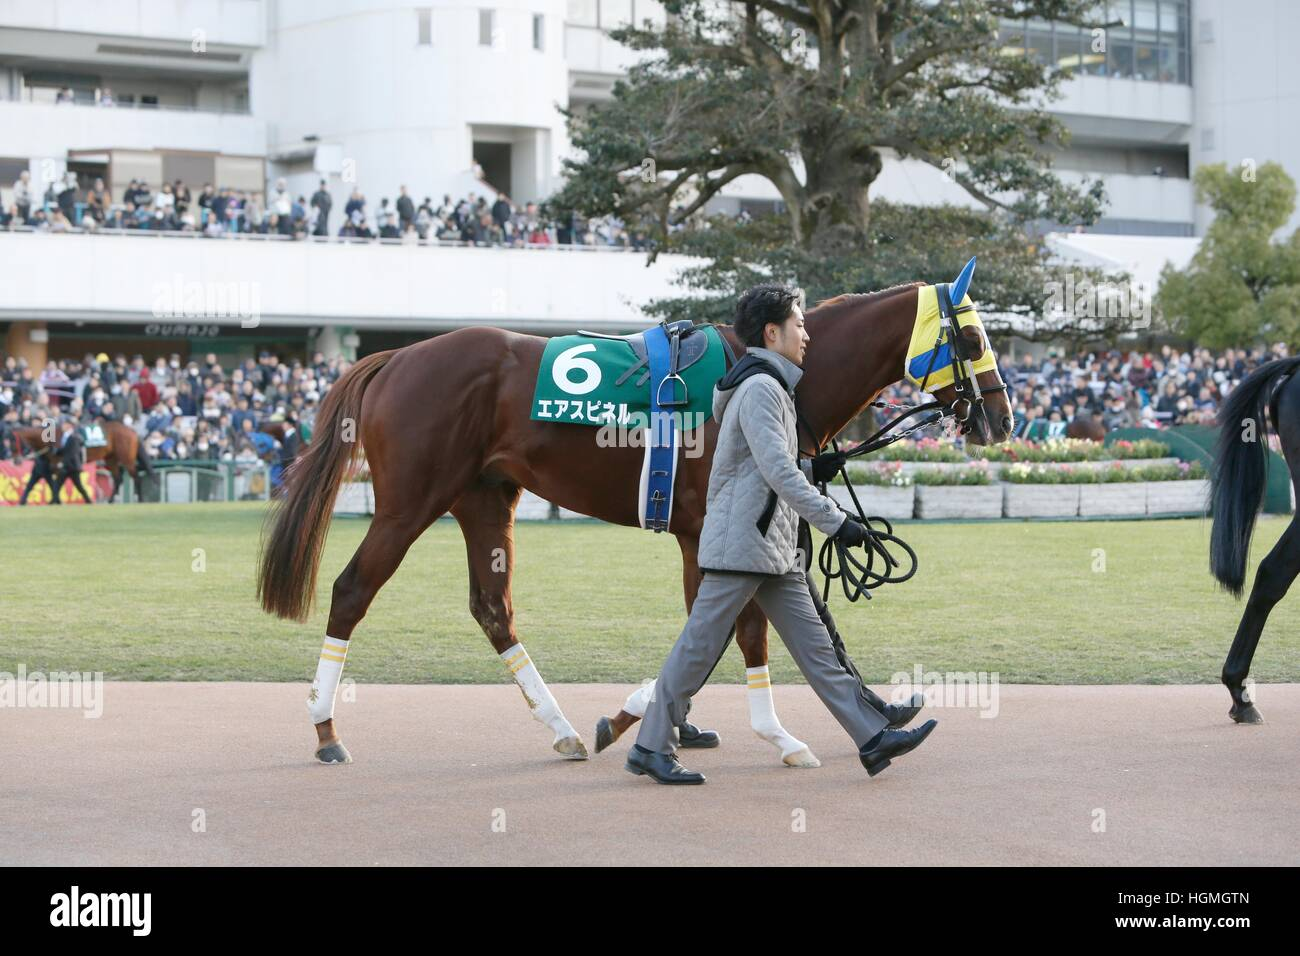 Kyoto, Japan. 5th Jan, 2017. Air Spinel Horse Racing : Air Spinel is led through the paddock before the Sports Nippon - Stock Image